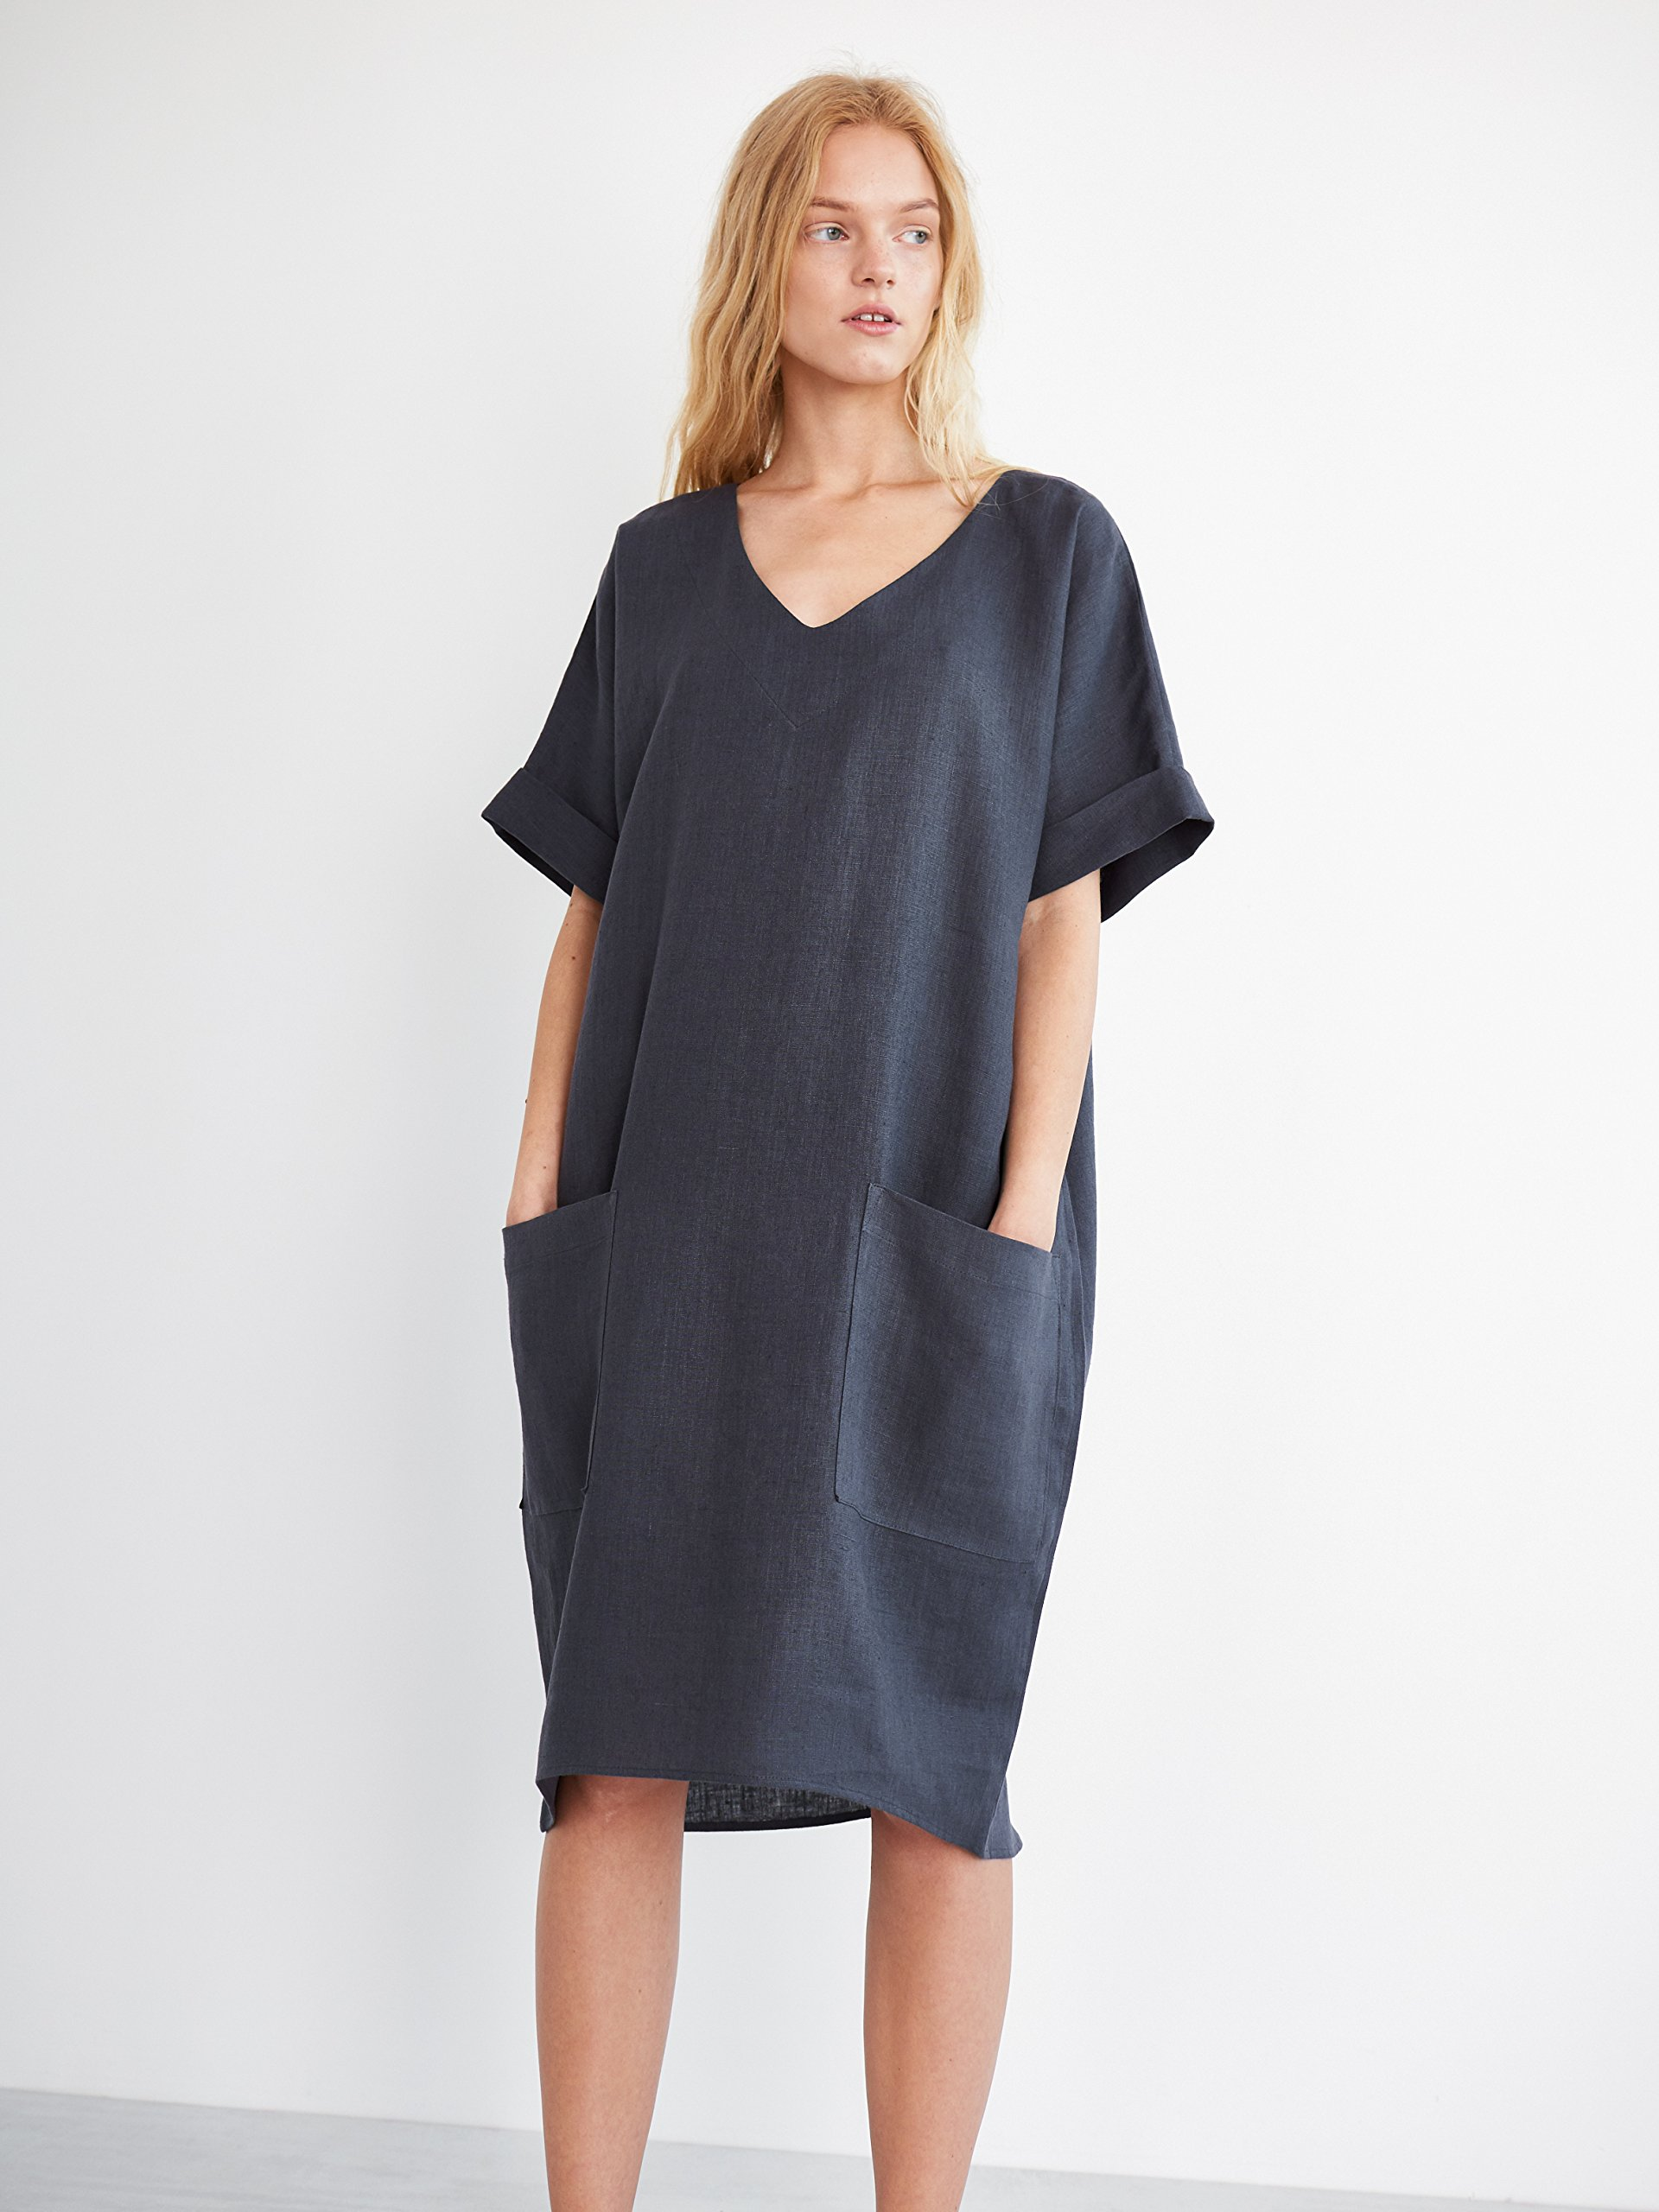 RUBY Oversized Linen Dress in Dark Grey Short Sleeve V-Neck Summer Dress Cocoon Relaxed Loose Fit Women Ladies Plus Size Clothing